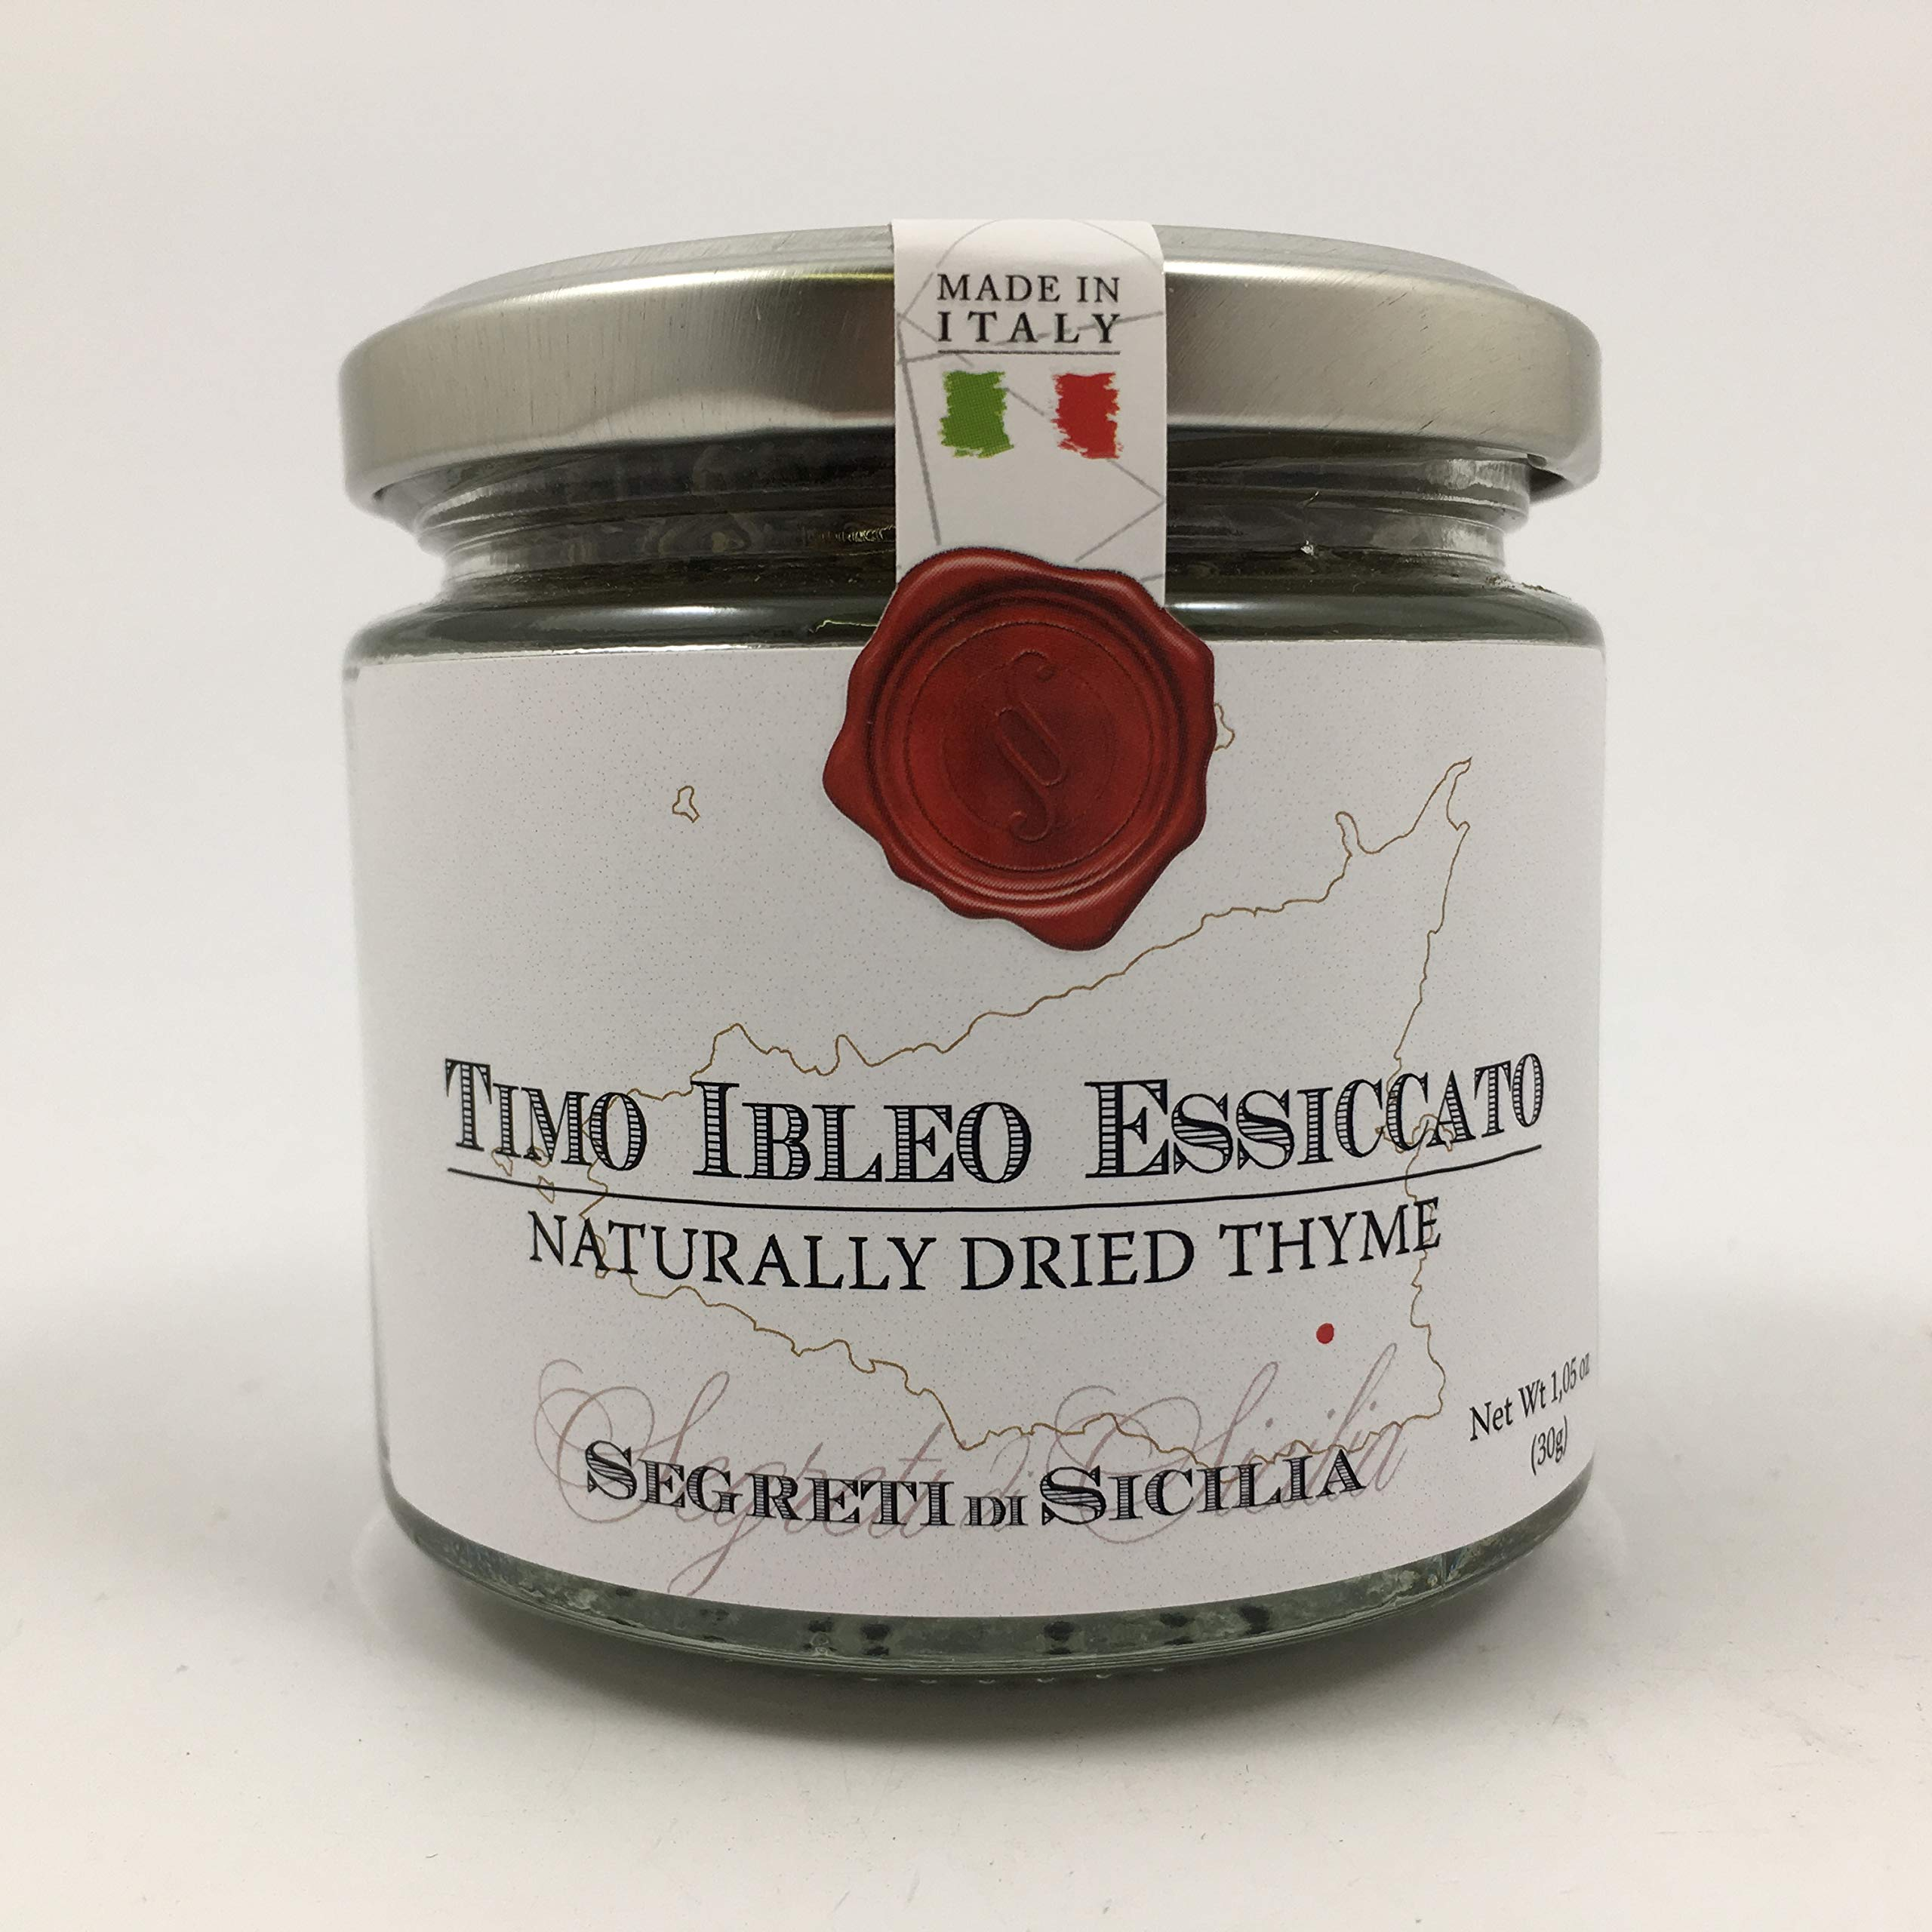 Naturally Dried Thyme From Sicily